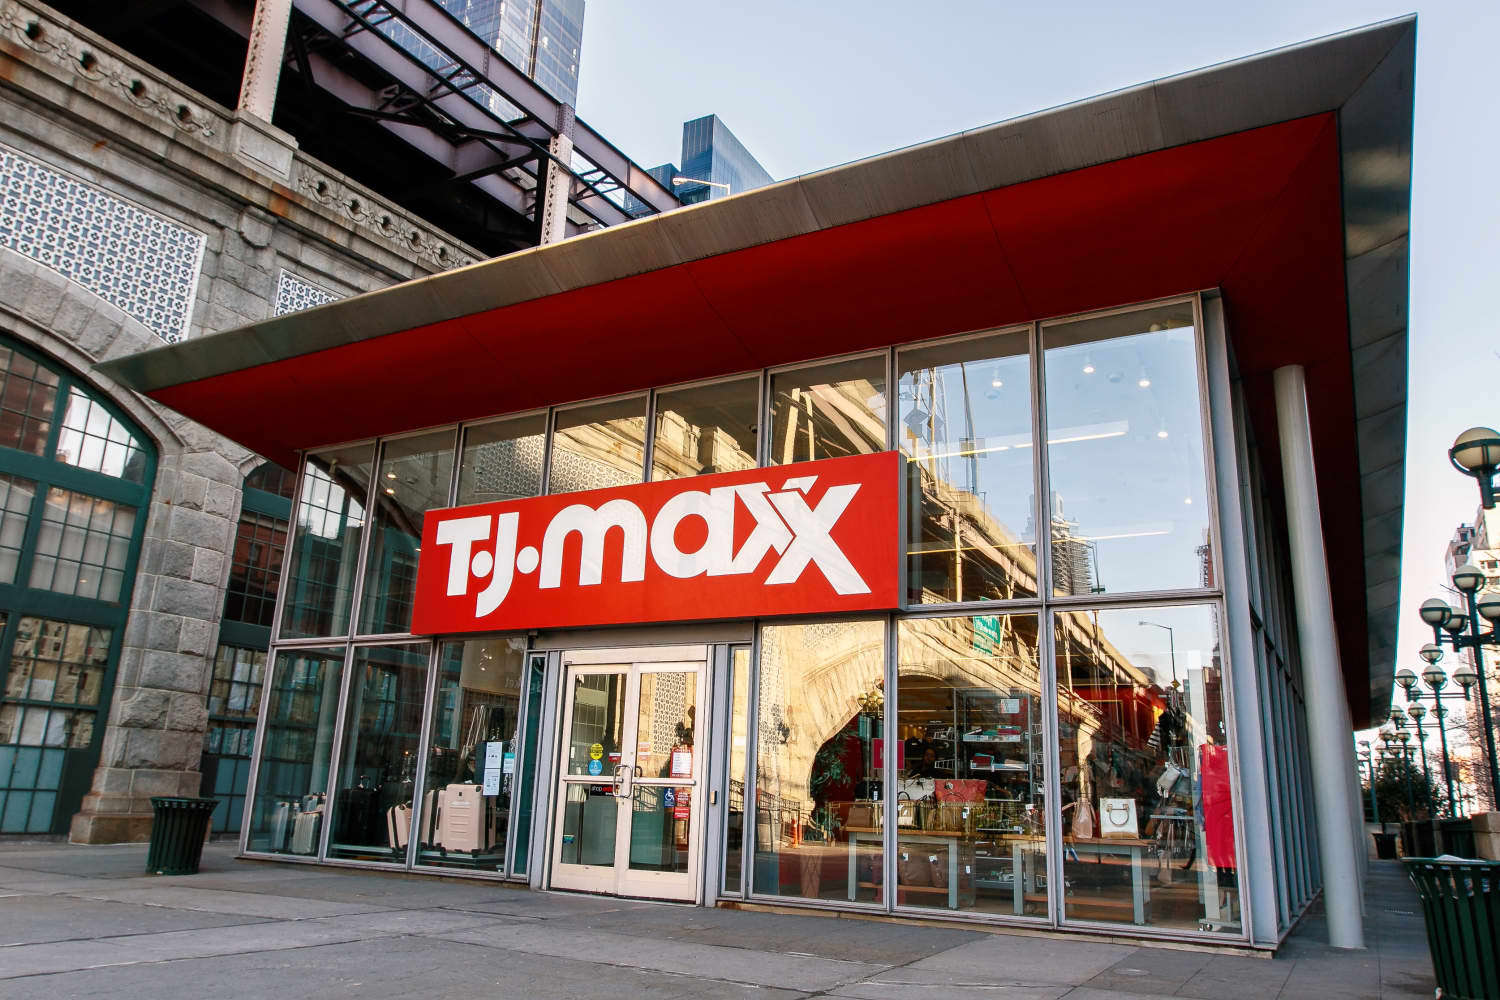 5 Home Picks for $20 or Less from the T.J. Maxx's Online Clearance Section